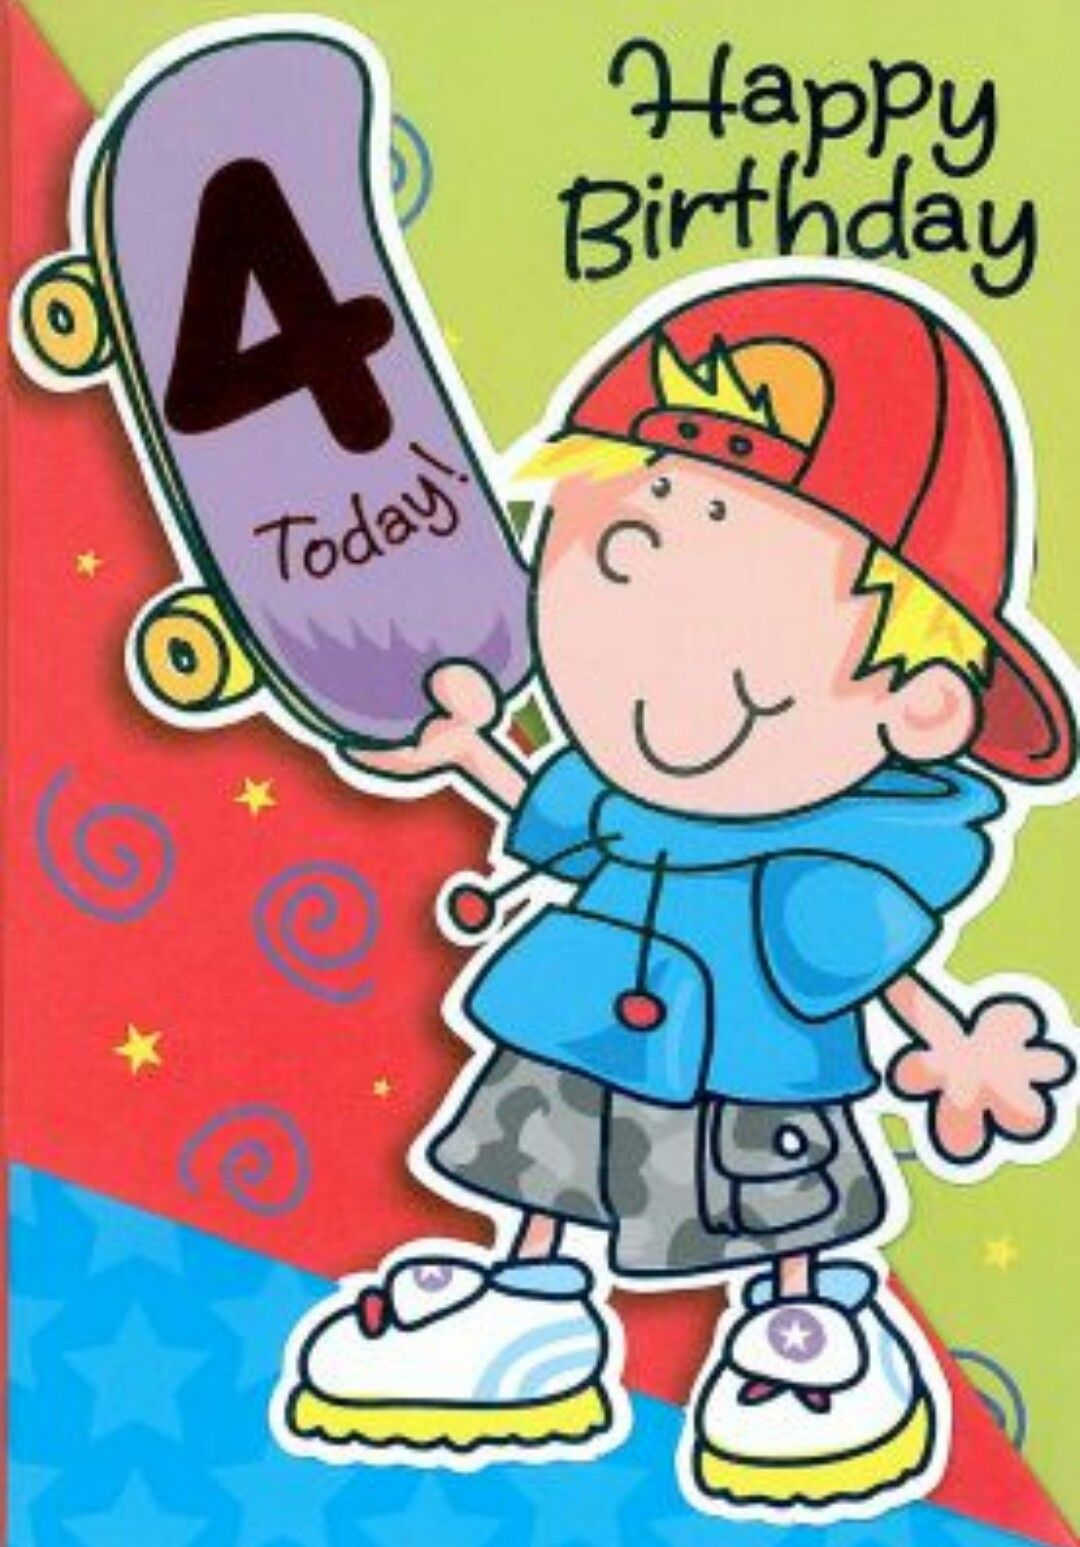 Happy 4th birthday clipart